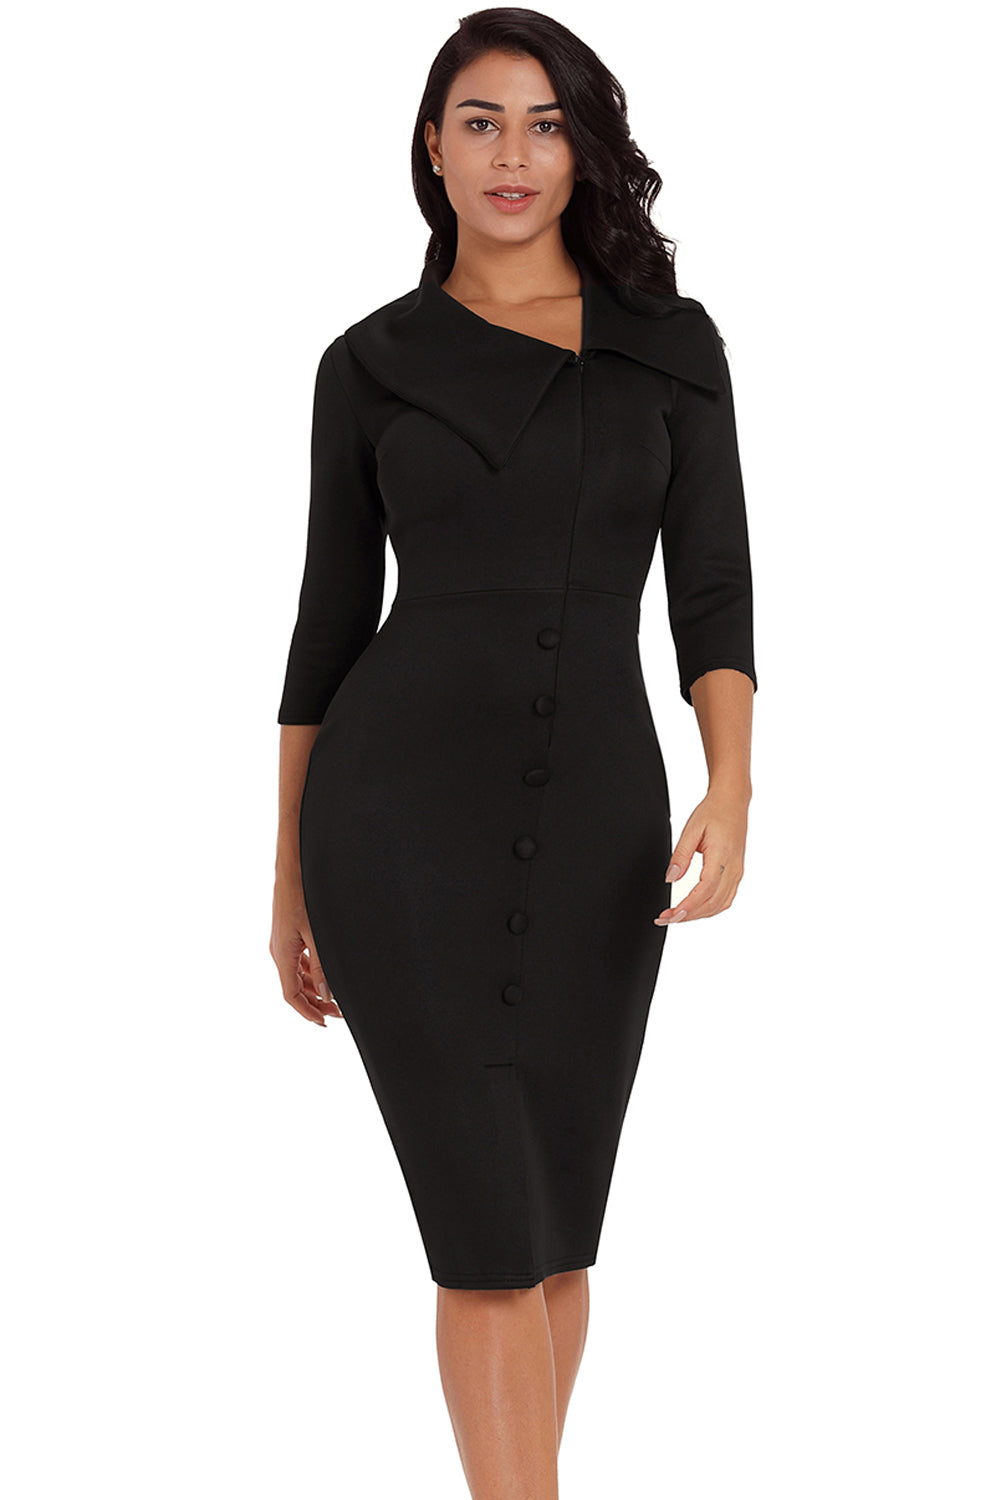 Black Long Sleeve  Bodycon Midi Dress - Its Trendy Frenzy